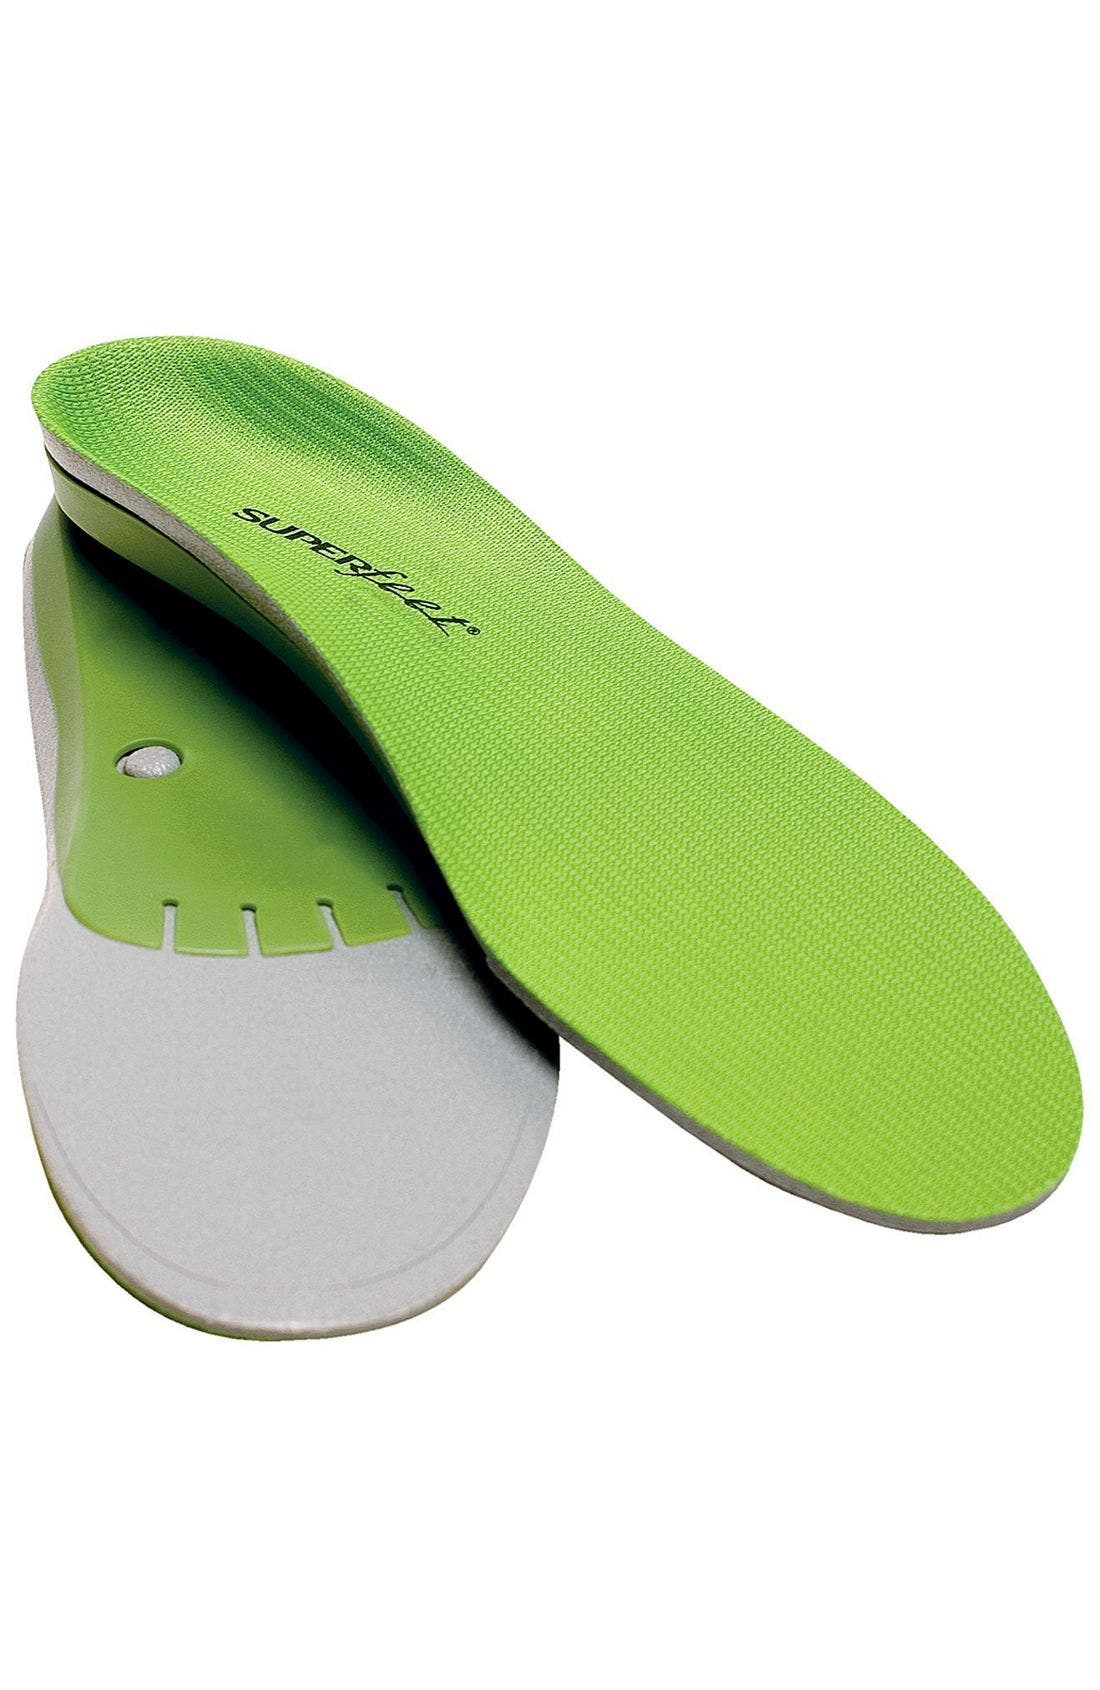 'Performance Green' Insoles,                             Main thumbnail 1, color,